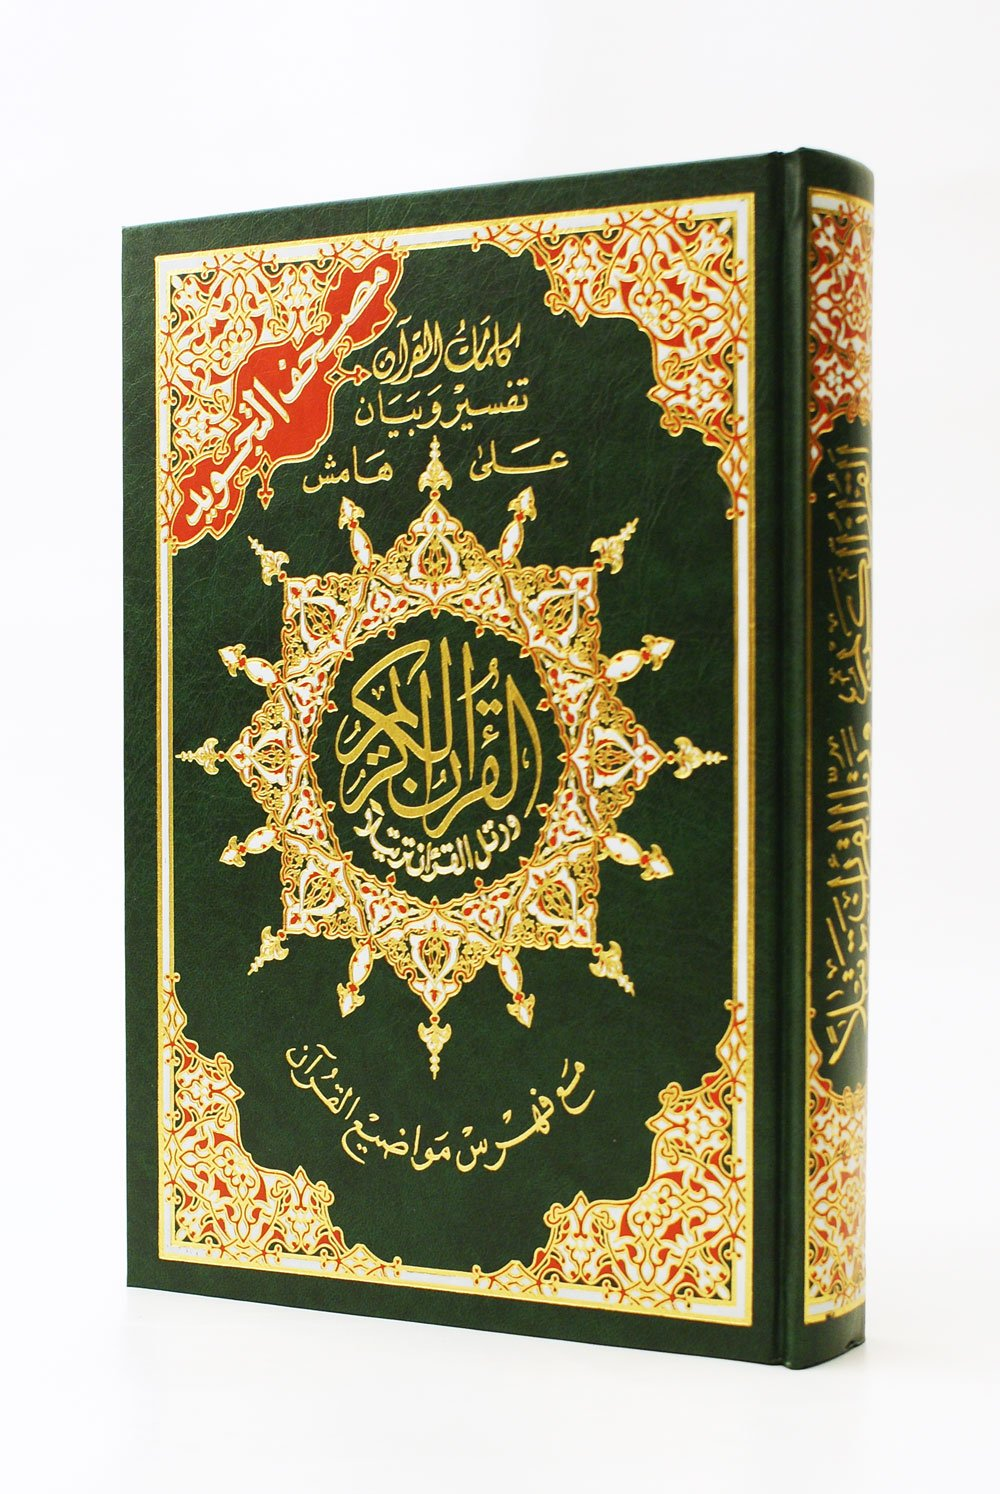 "Download X-Large Mosque Size (10""x 14"") Hardcover Tajweed Holy Quran/Koran/Holy Book (Whole Qurâan) (Colors May Vary) (Arabic) (Arabic Edition) ebook"